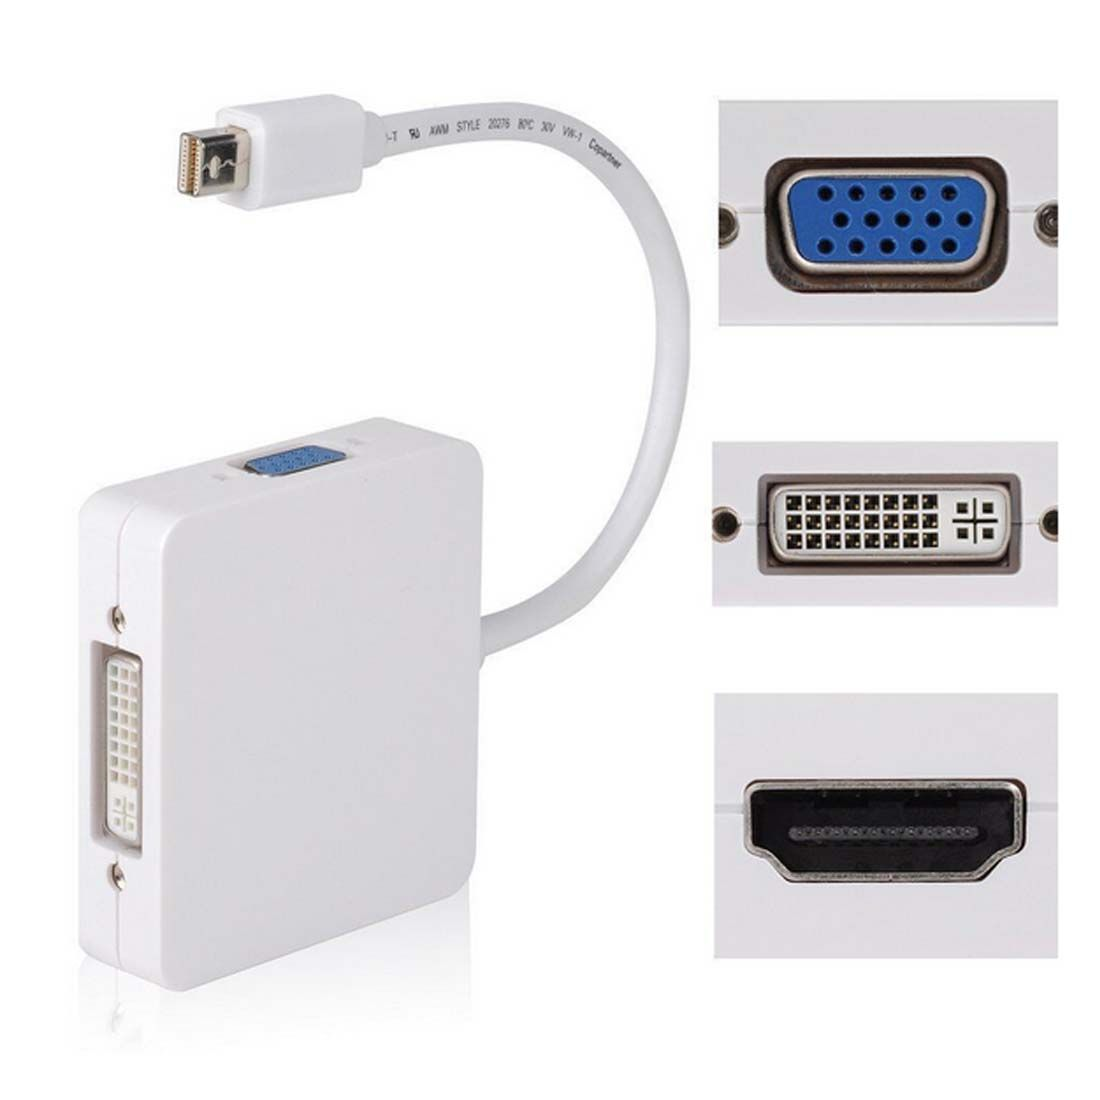 New 3 In1 Thunderbolt Mini Displayport Dp To Hdmi Dvi Vga Adapter Converter Display Port Cable For